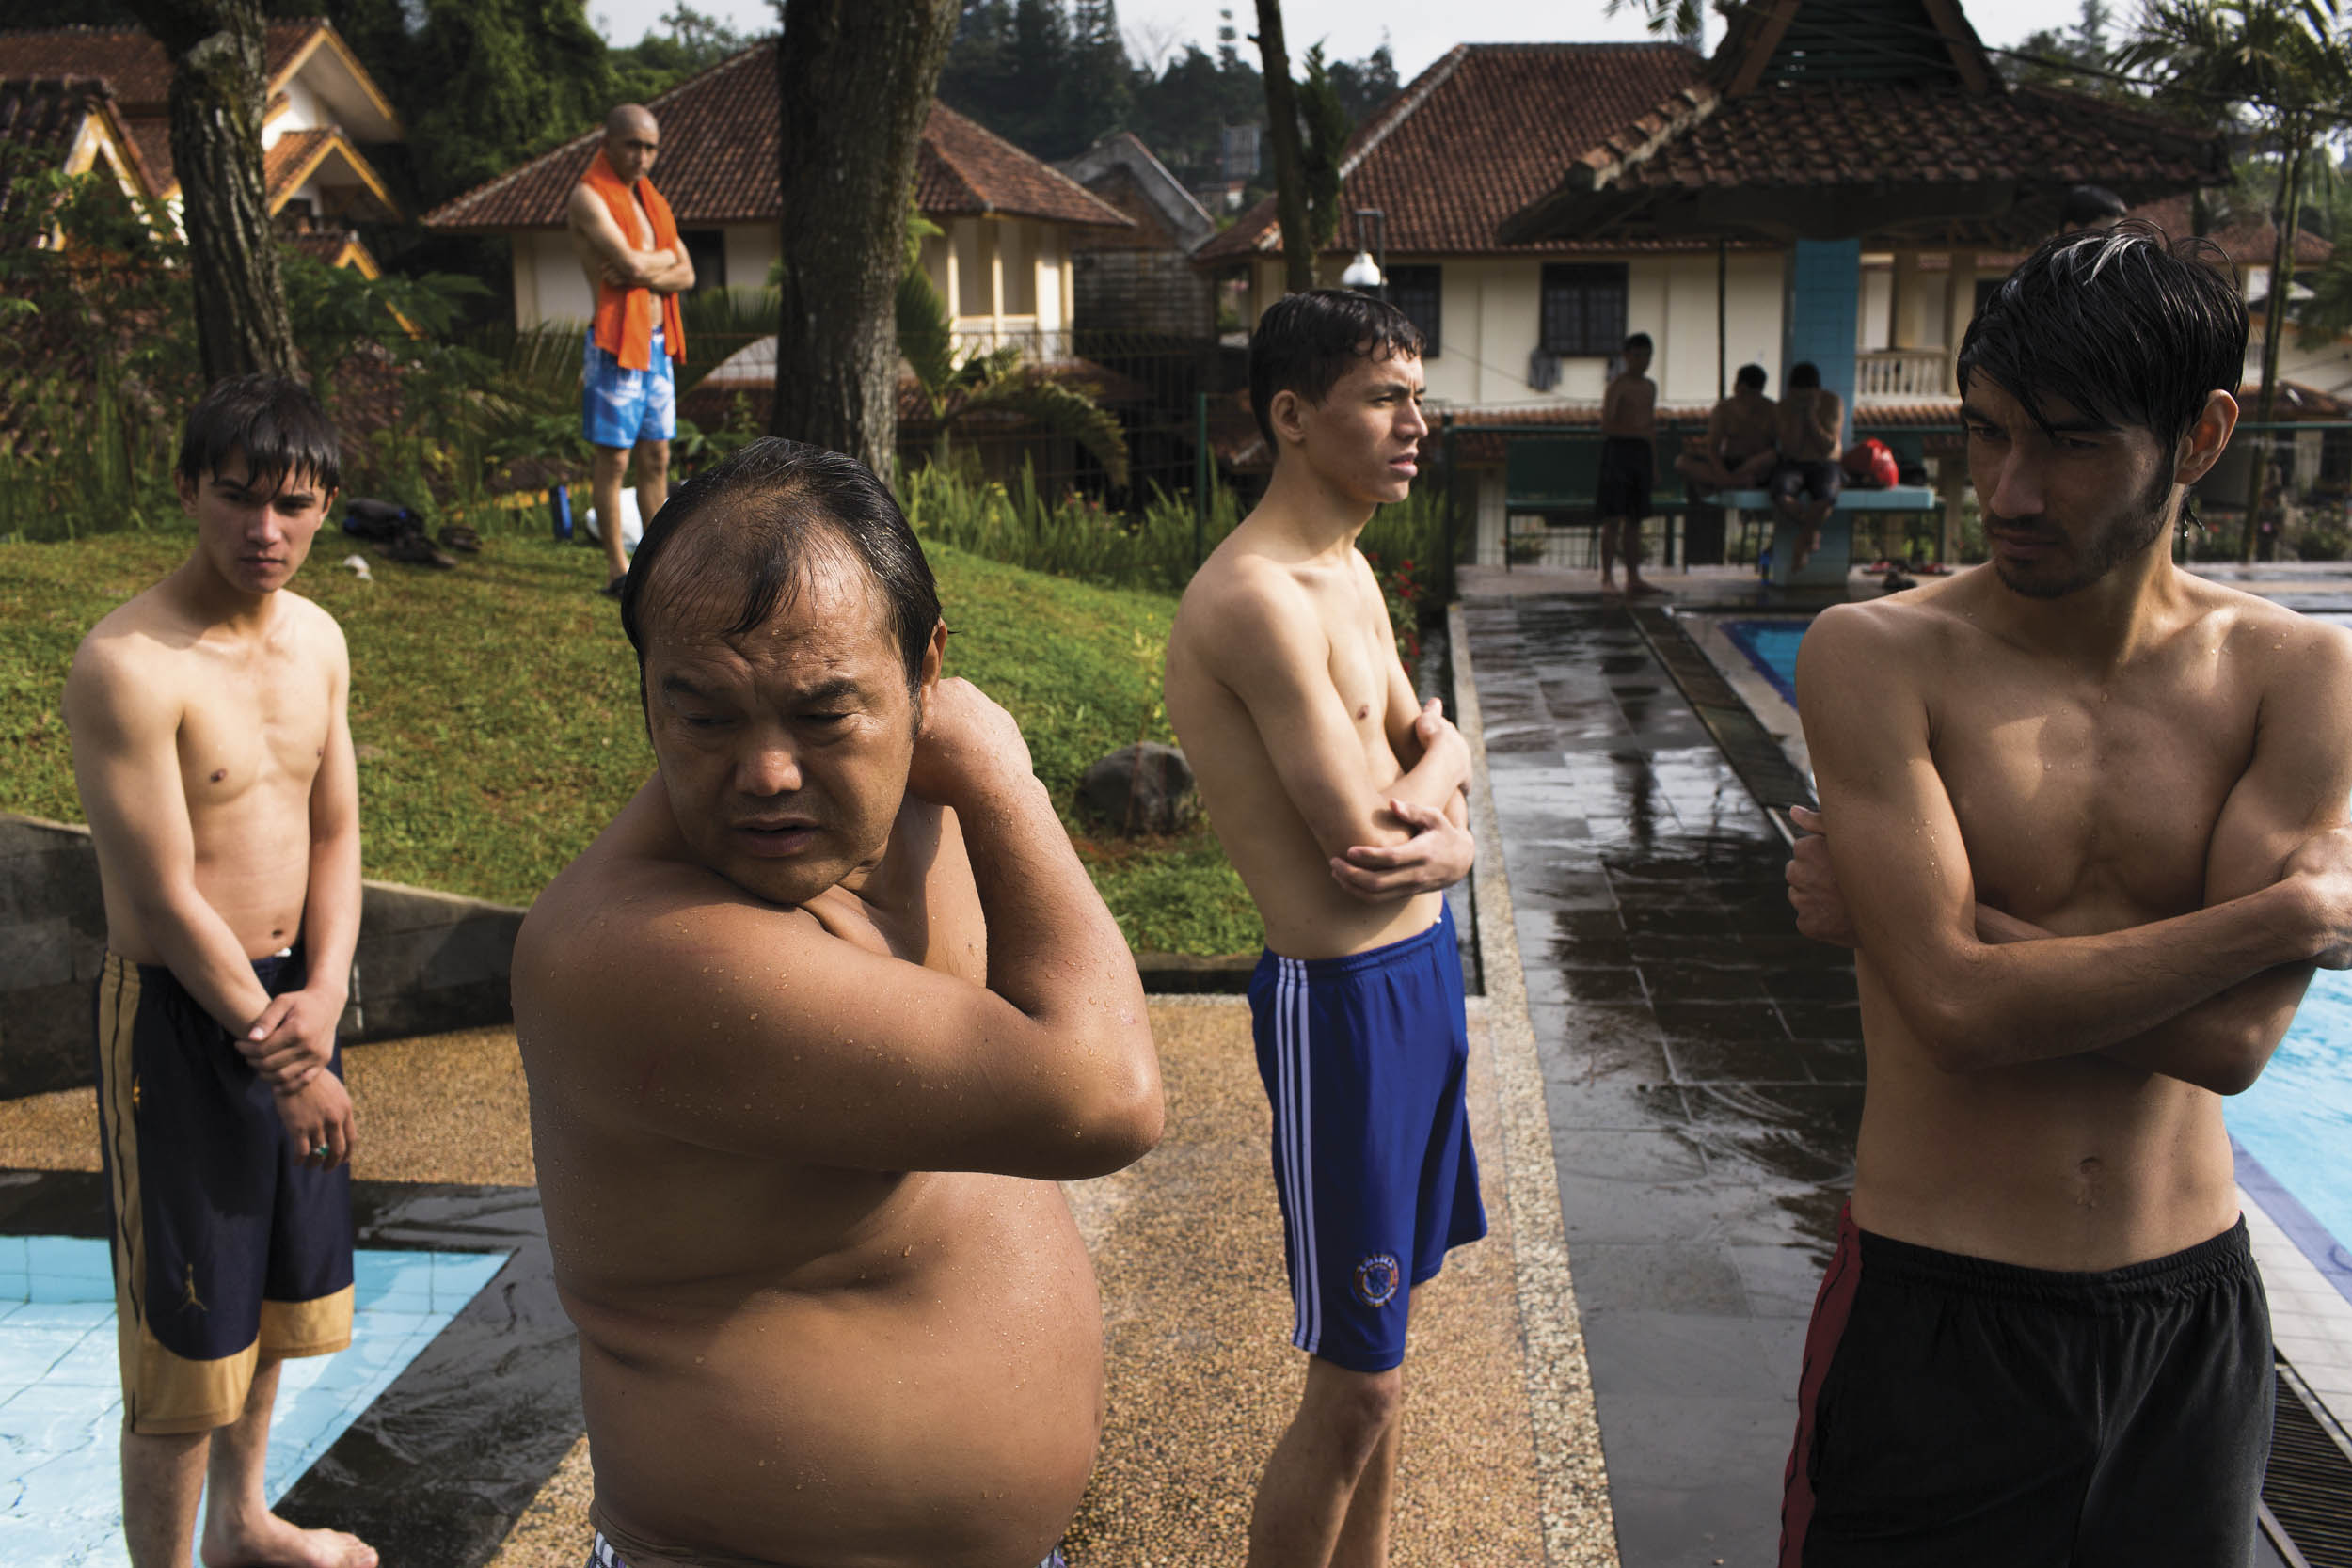 Cisarua, West Java, Indonesia. Ethnic Hazaras from Afghanistan and Pakistan swim at the local Evergreen pool in Cisarua.